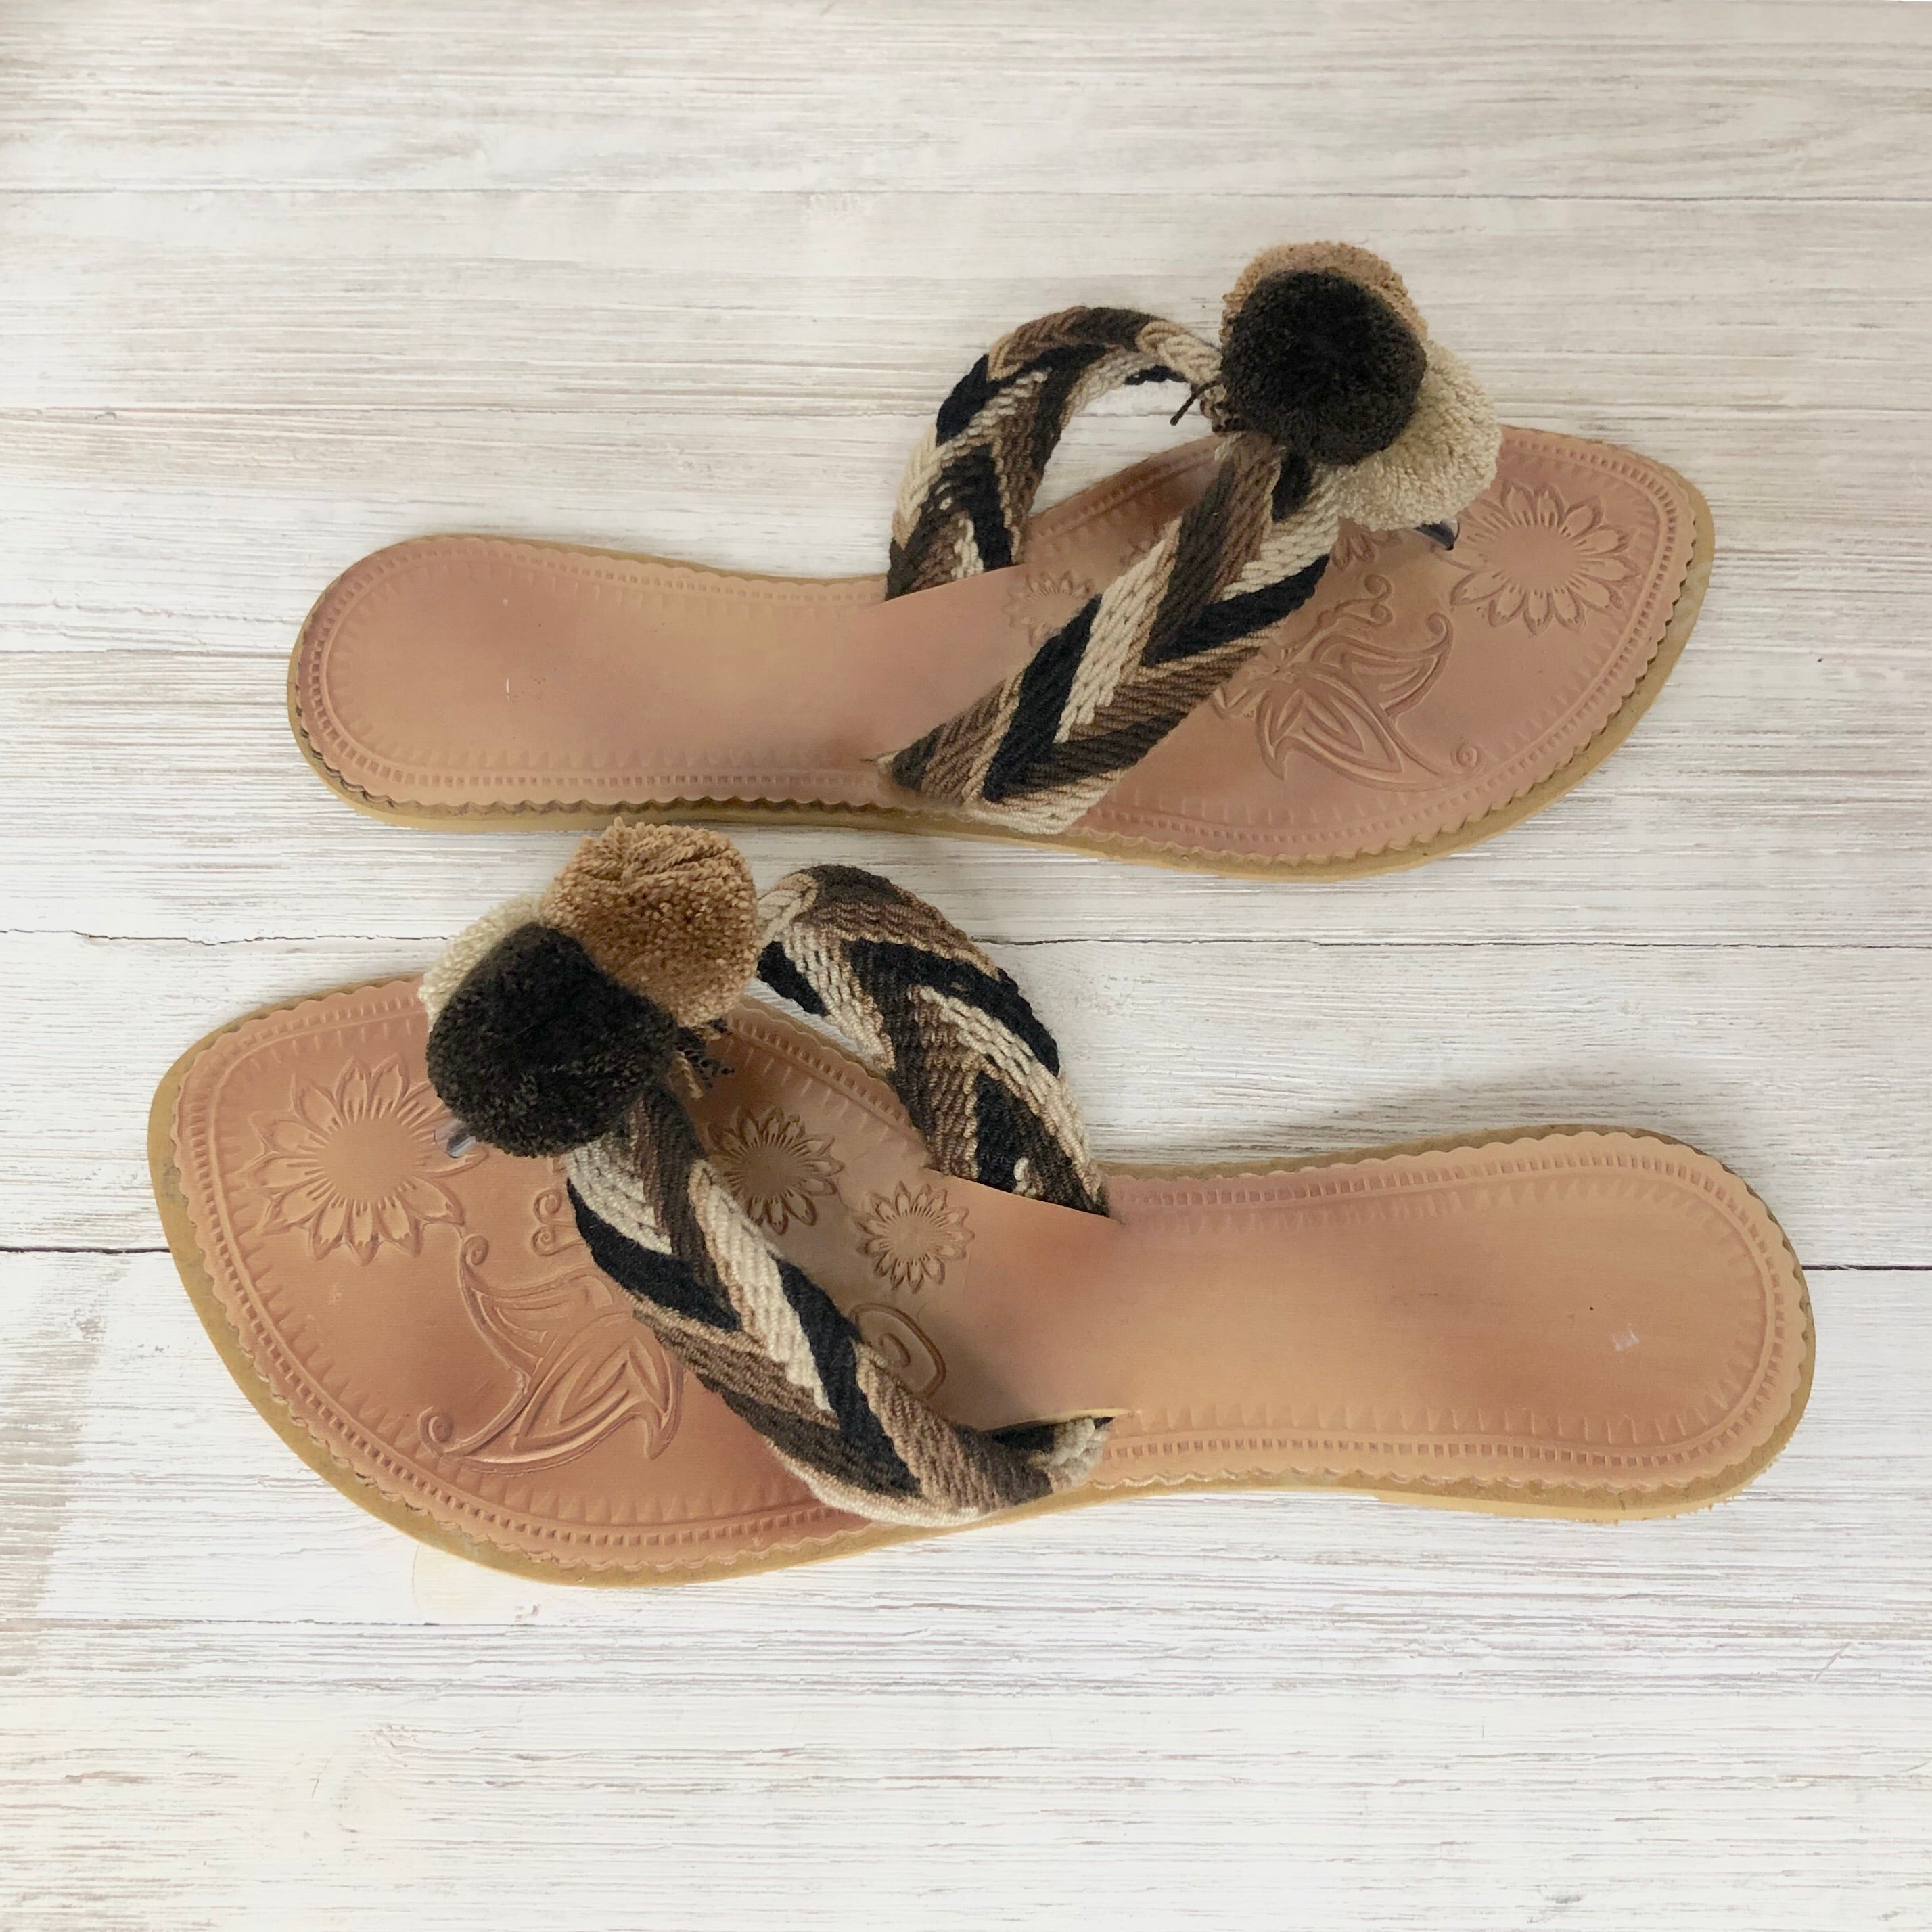 Shades of Brown Pom Pom Sandals - Summer Flip Flops-BEACH FLATS-SLIDES